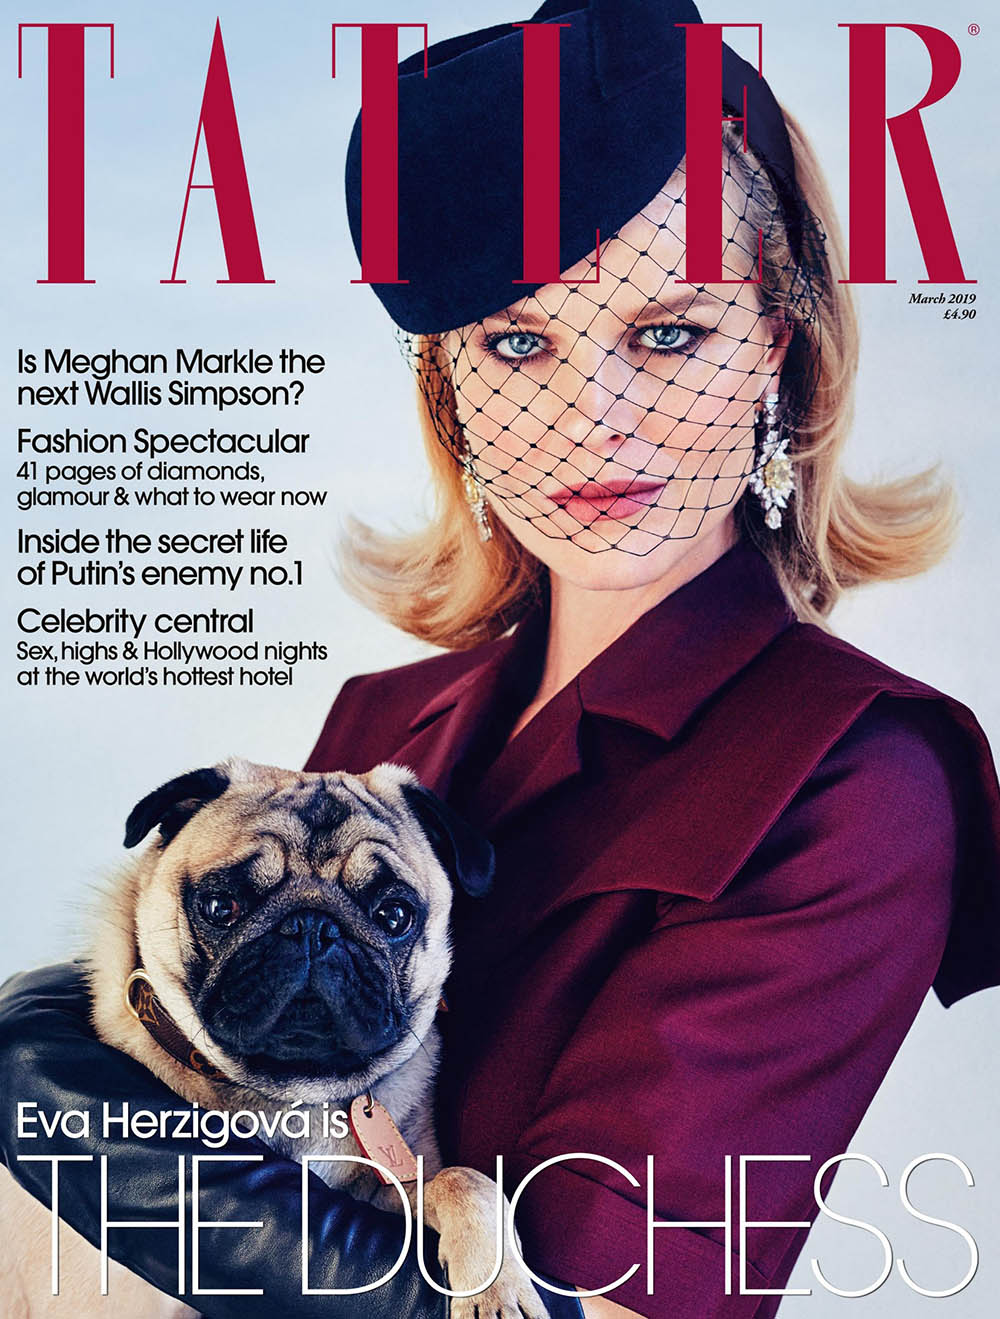 Eva Herzigova covers Tatler UK March 2019 by Simon Emmett